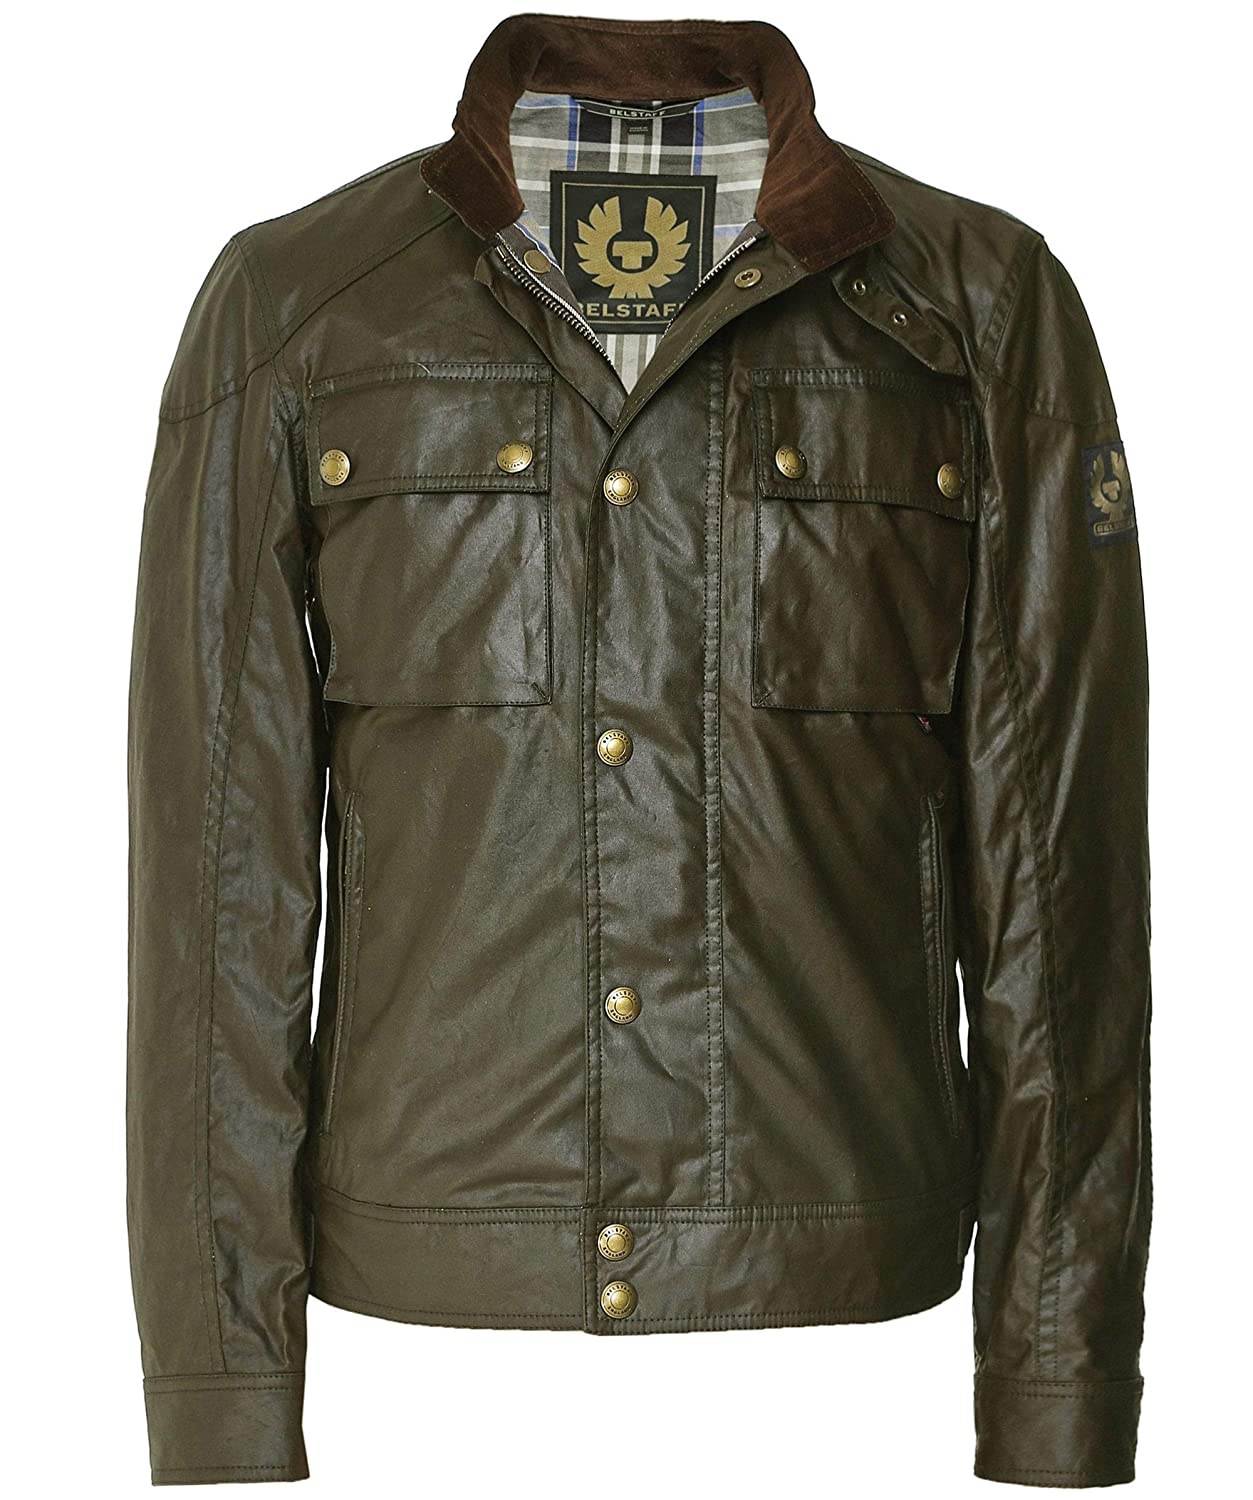 a95da22d4 Belstaff Men's Waxed Cotton Racemaster Jacket Green at Amazon Men's ...